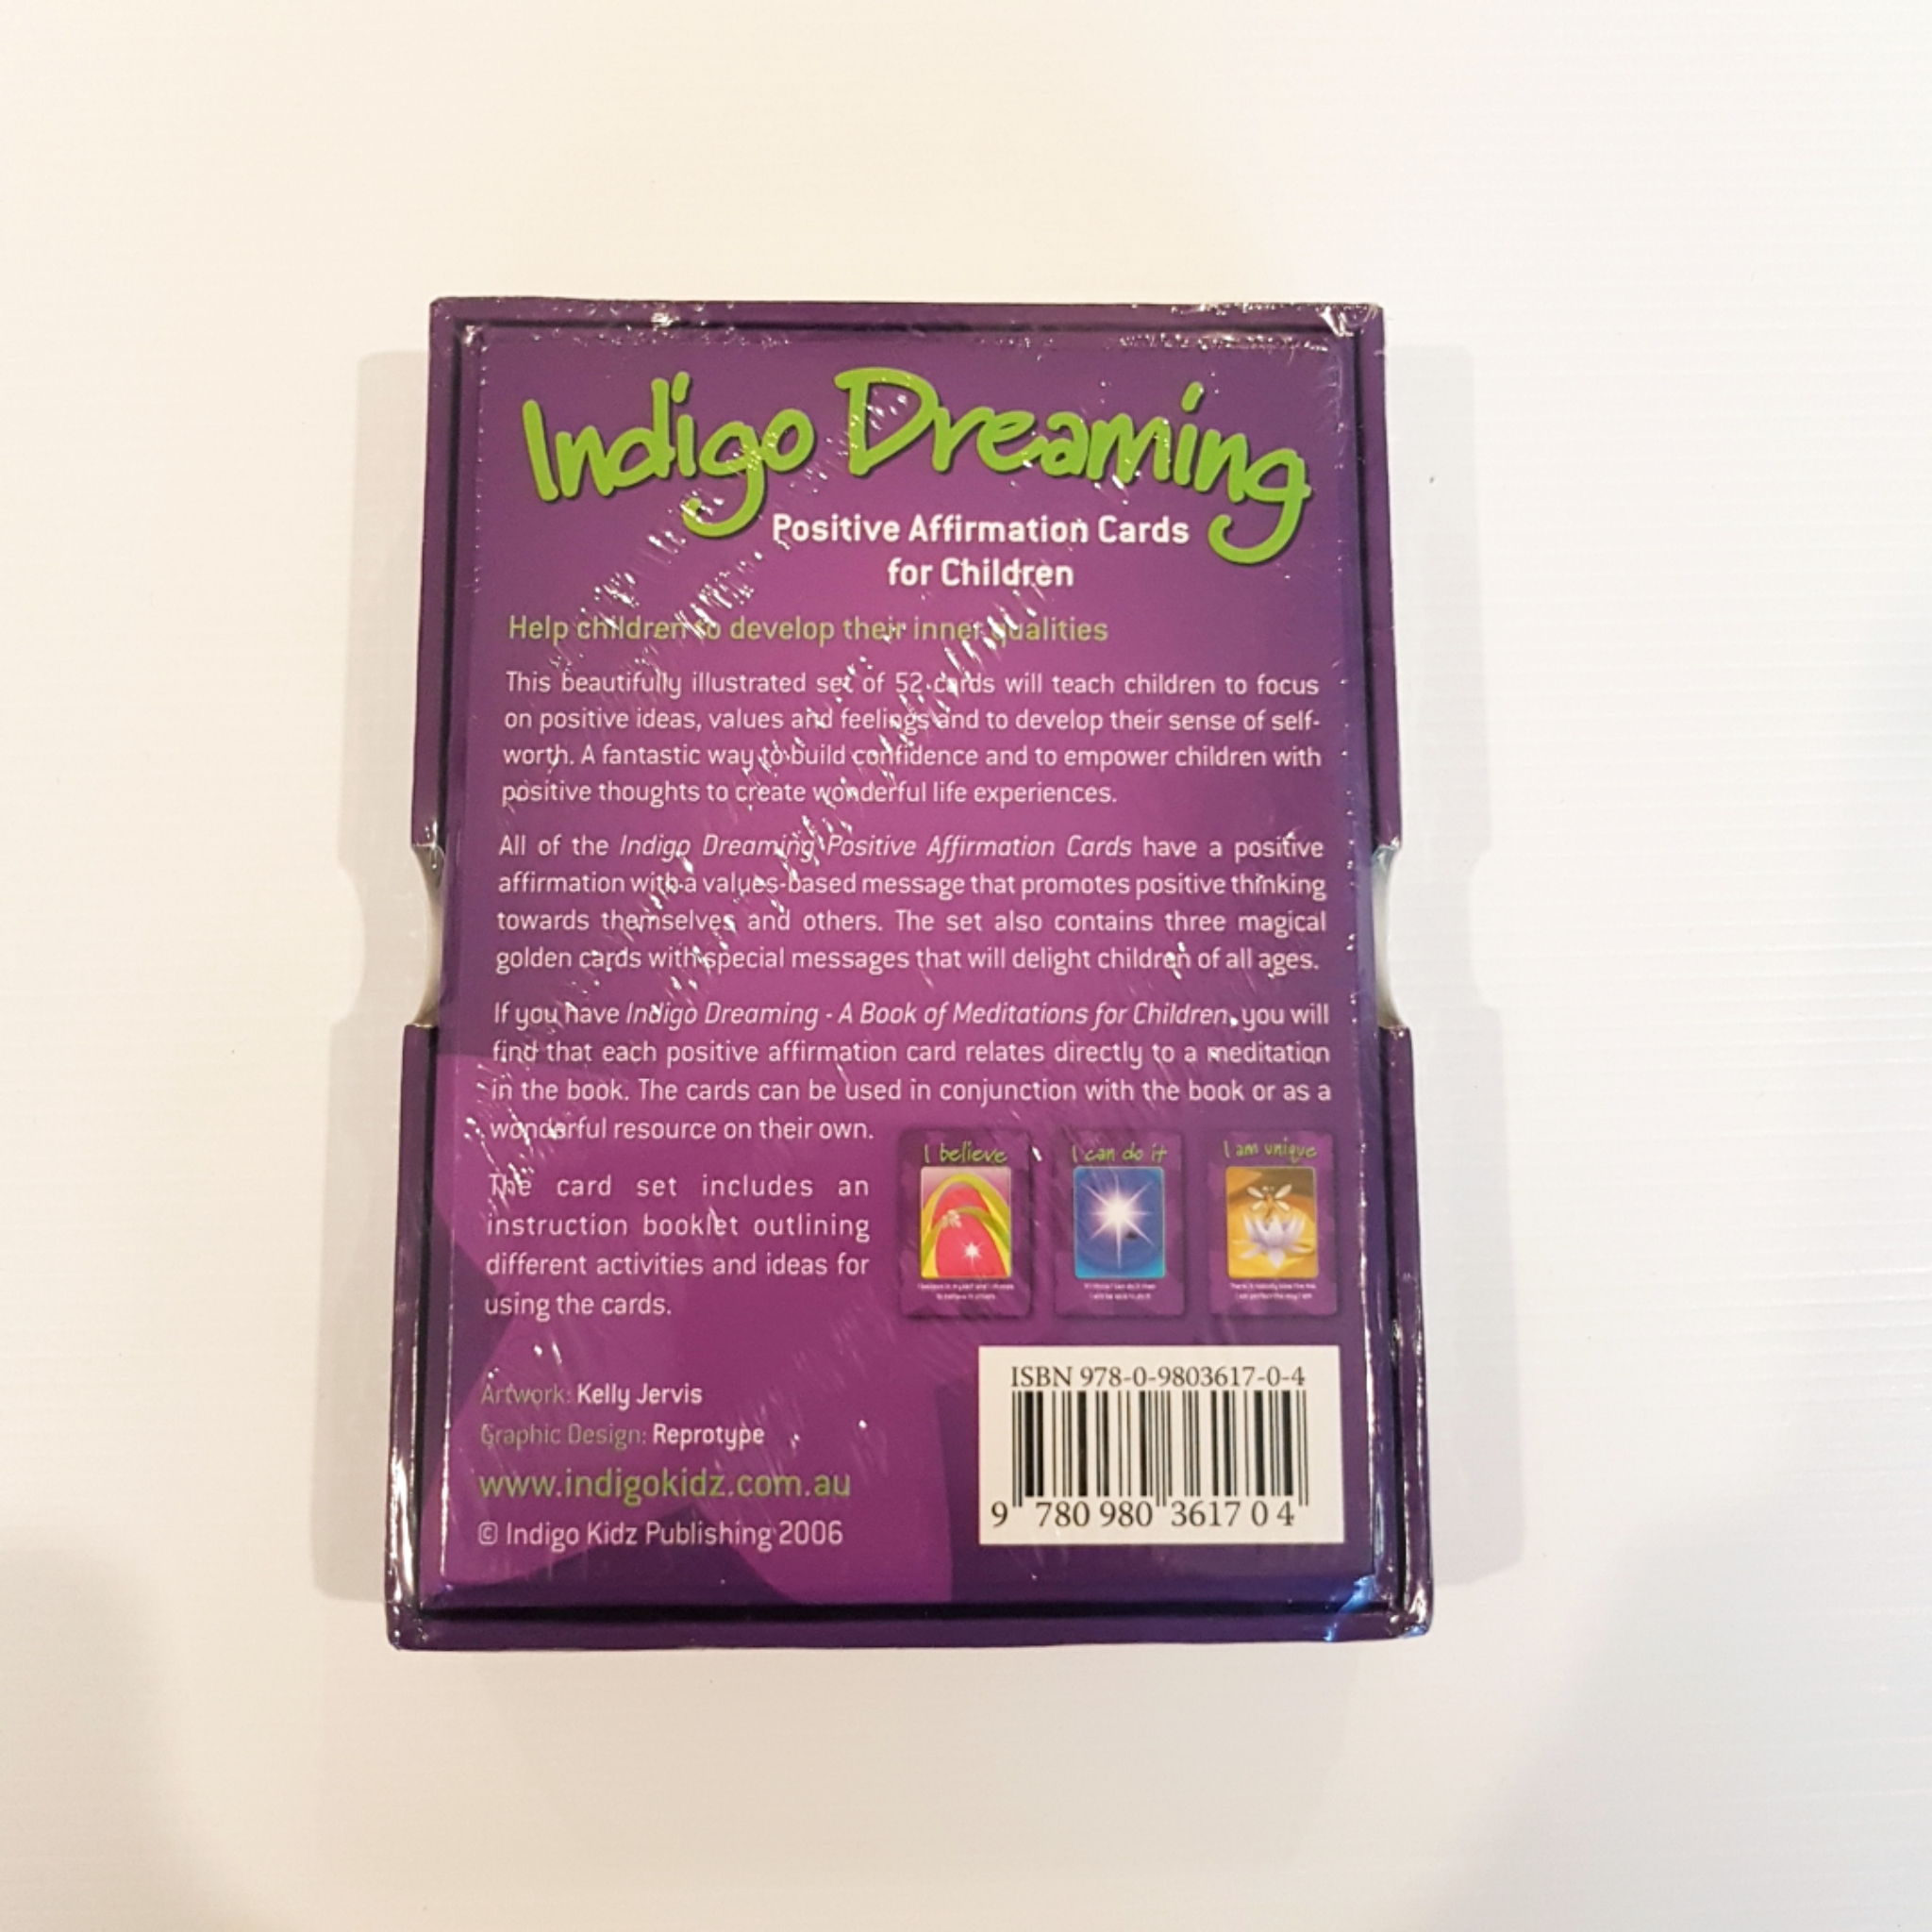 Indigo Dreaming Affirmation Cards (Set)